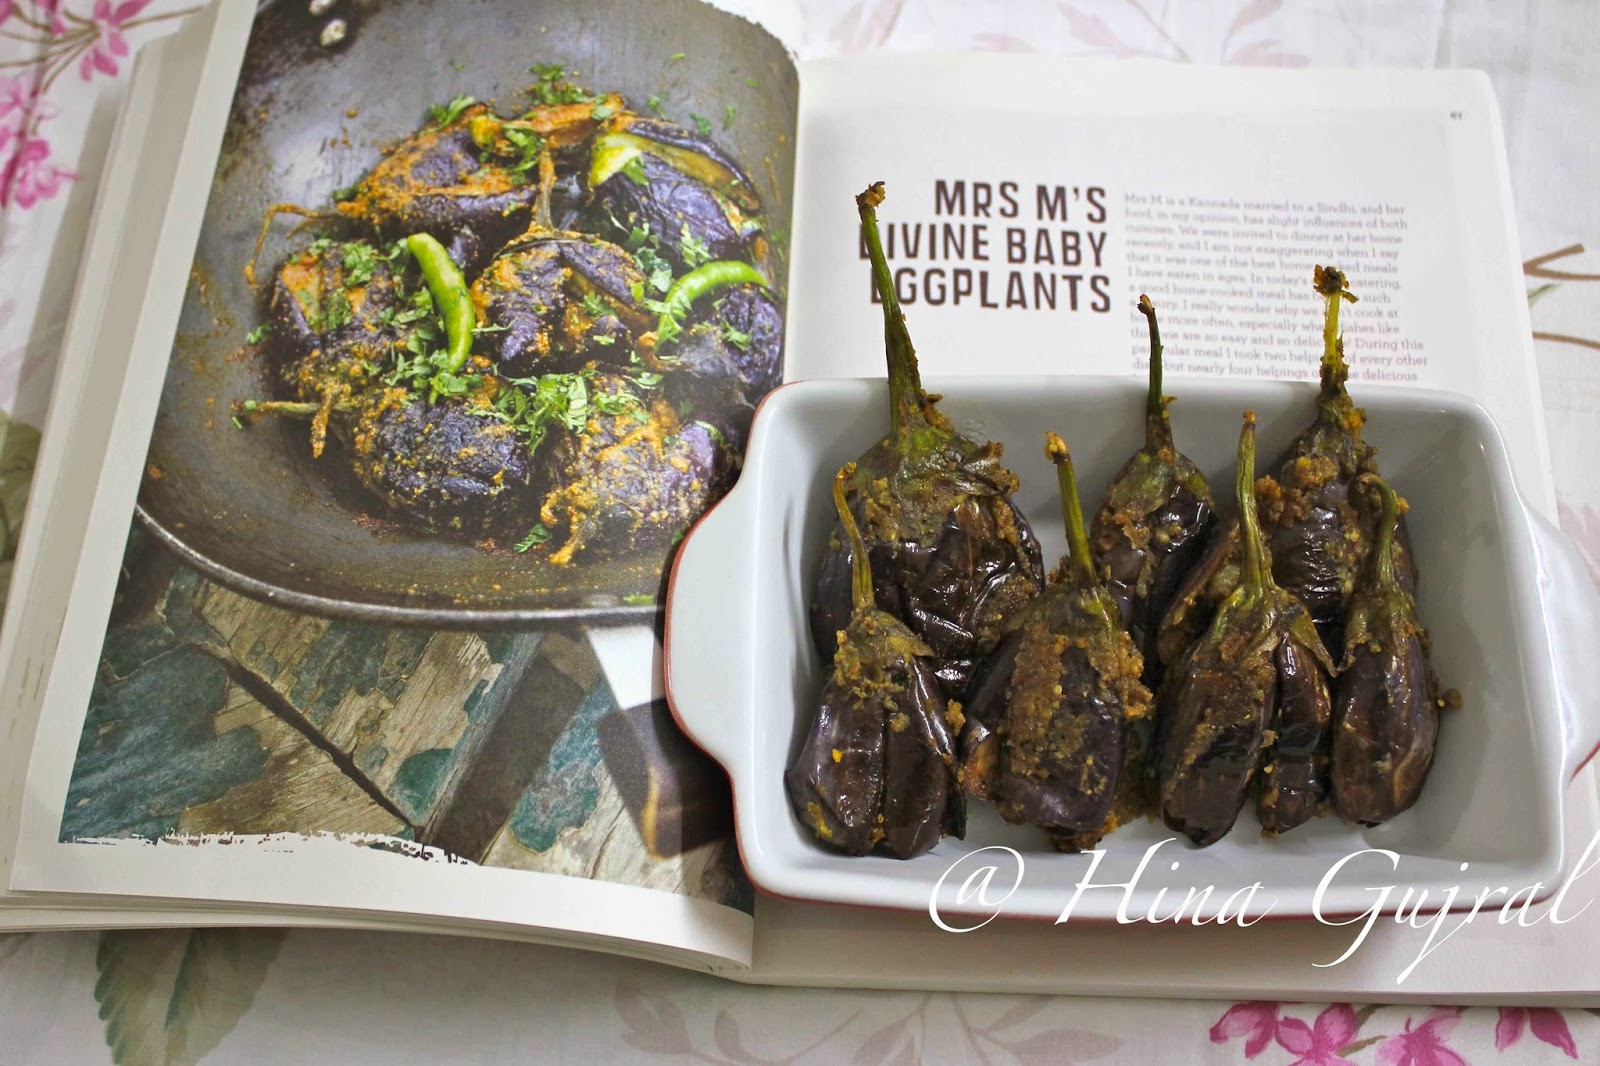 Mrs M's Divine Baby Eggplants from Diva Green - a vegetarian cookbook by Chef Ritu Dalmia. Find how to make baby eggplant